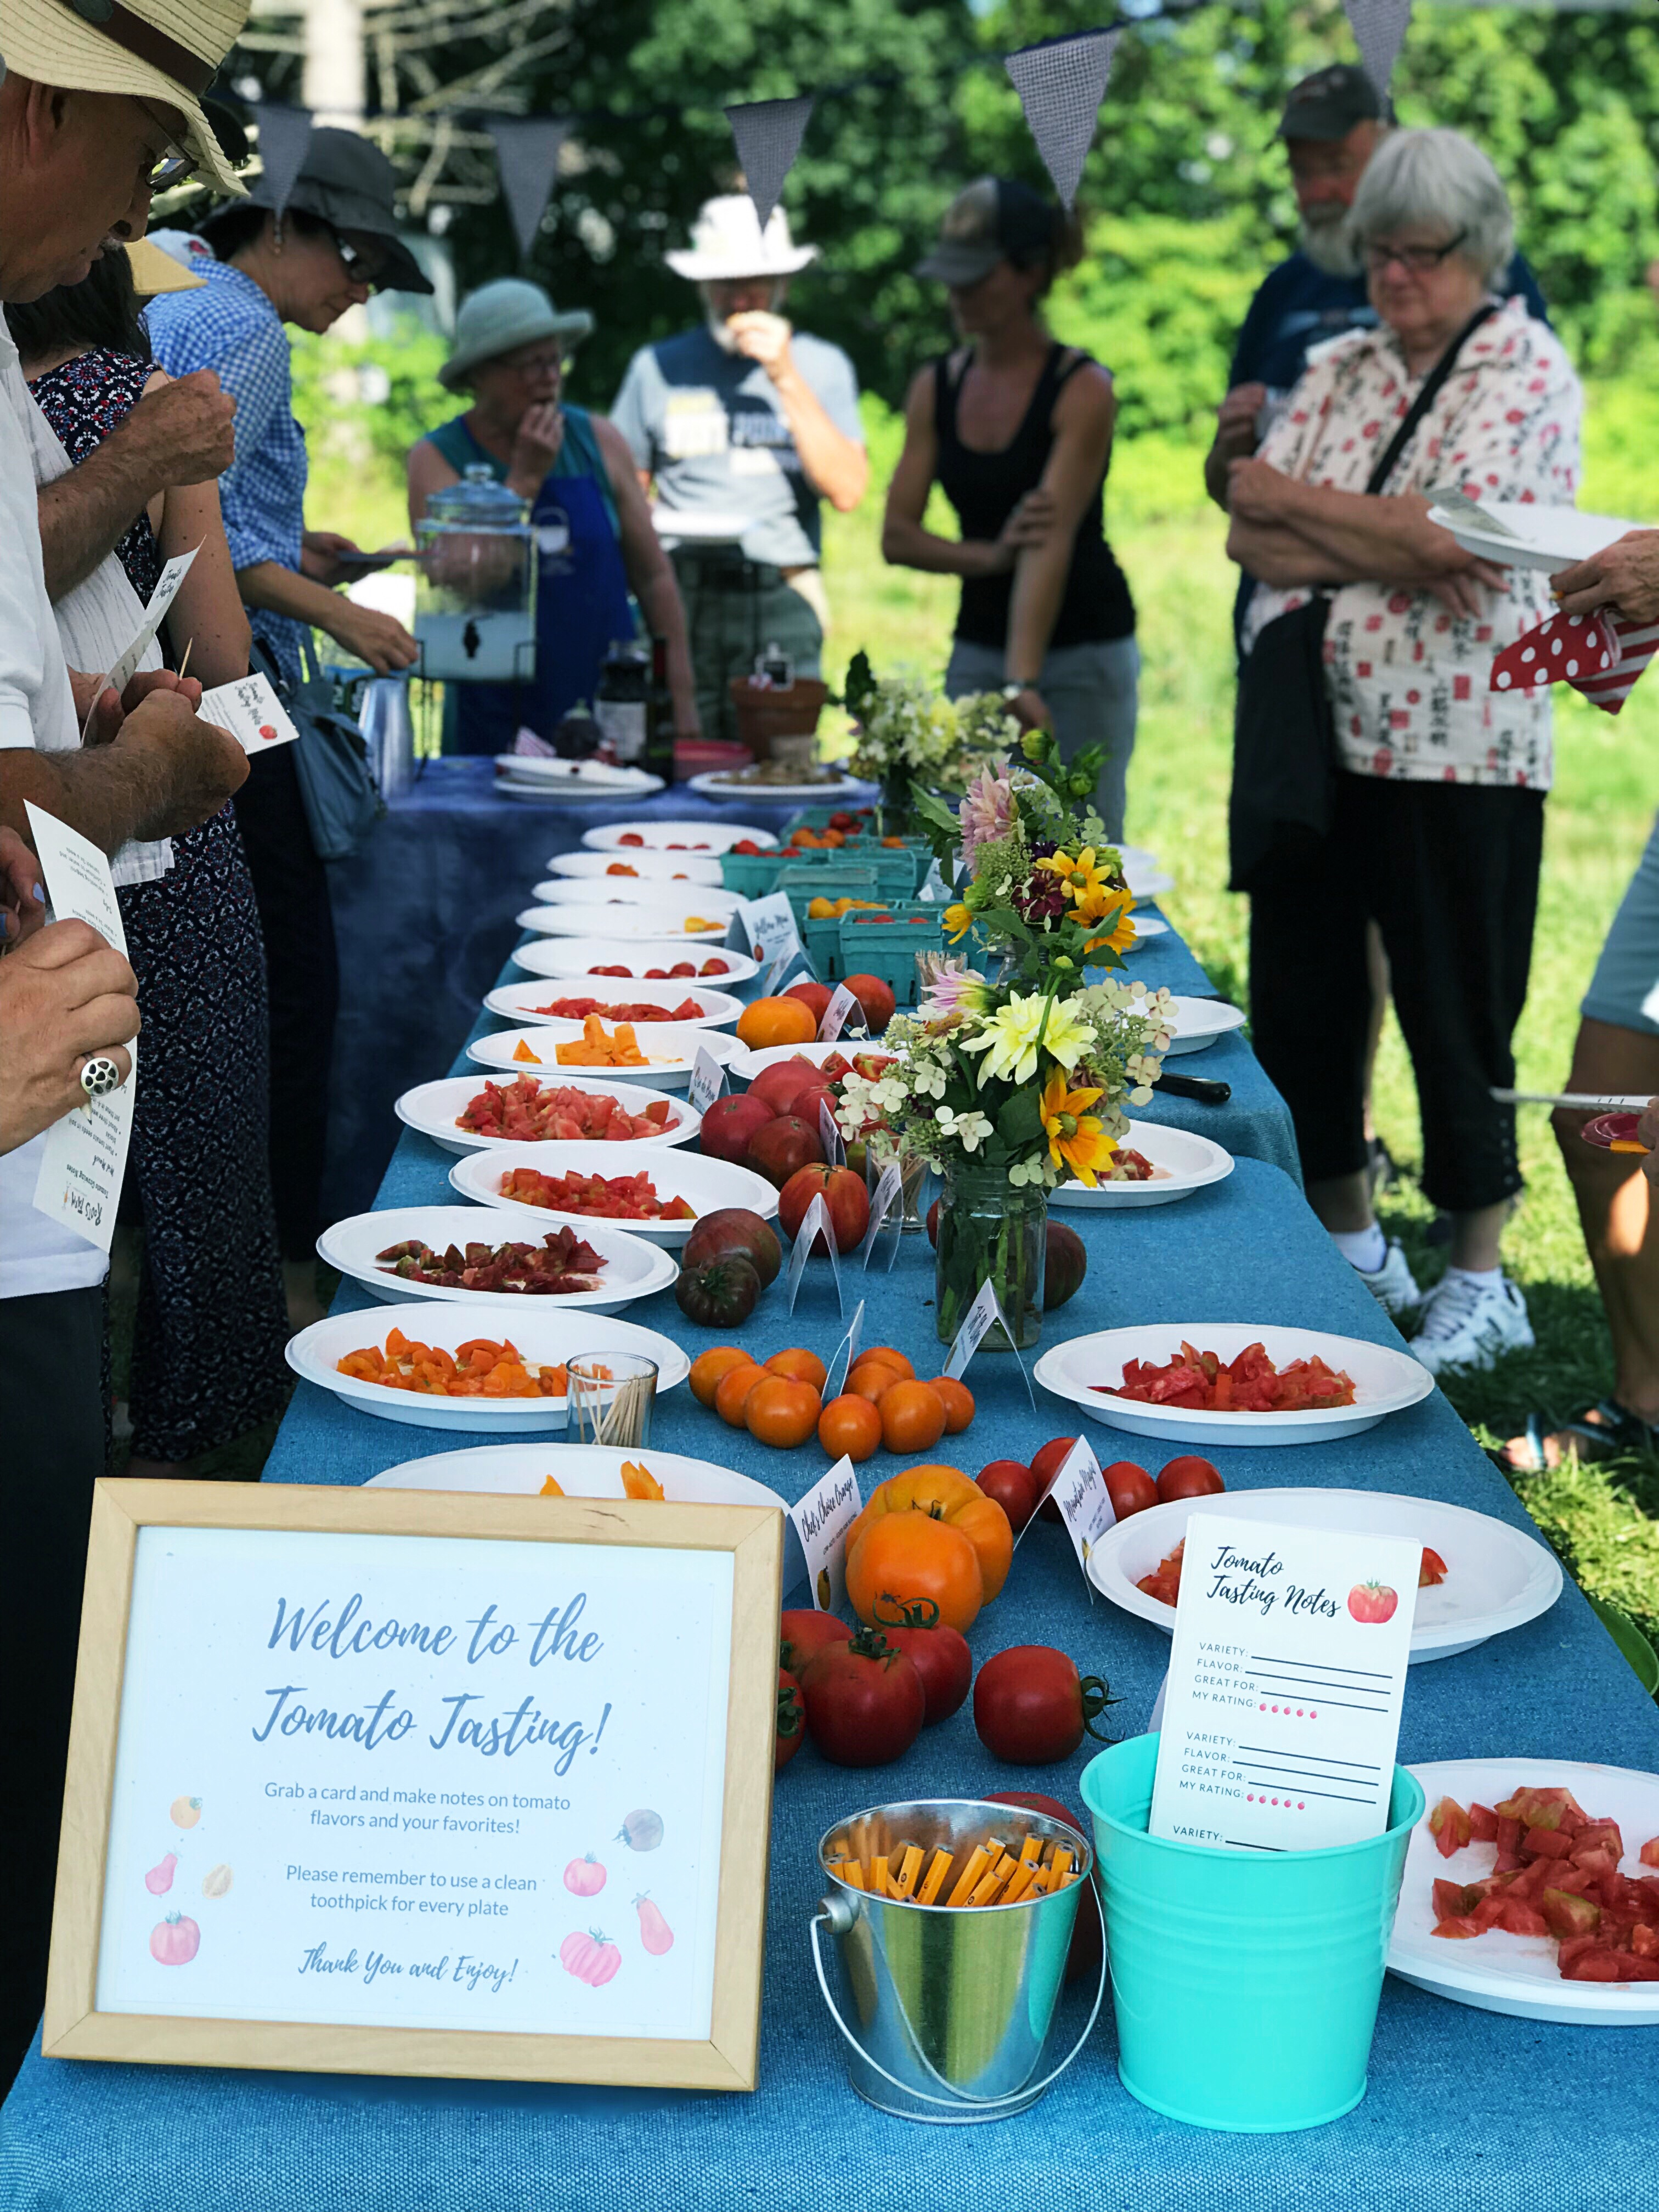 Showcase your best tasting heirloom tomatoes with a tomato tasting party! This post includes a FREE PRINTABLE Event Planning Guide, Tomato Tasting Note Cards and Tomato Labels